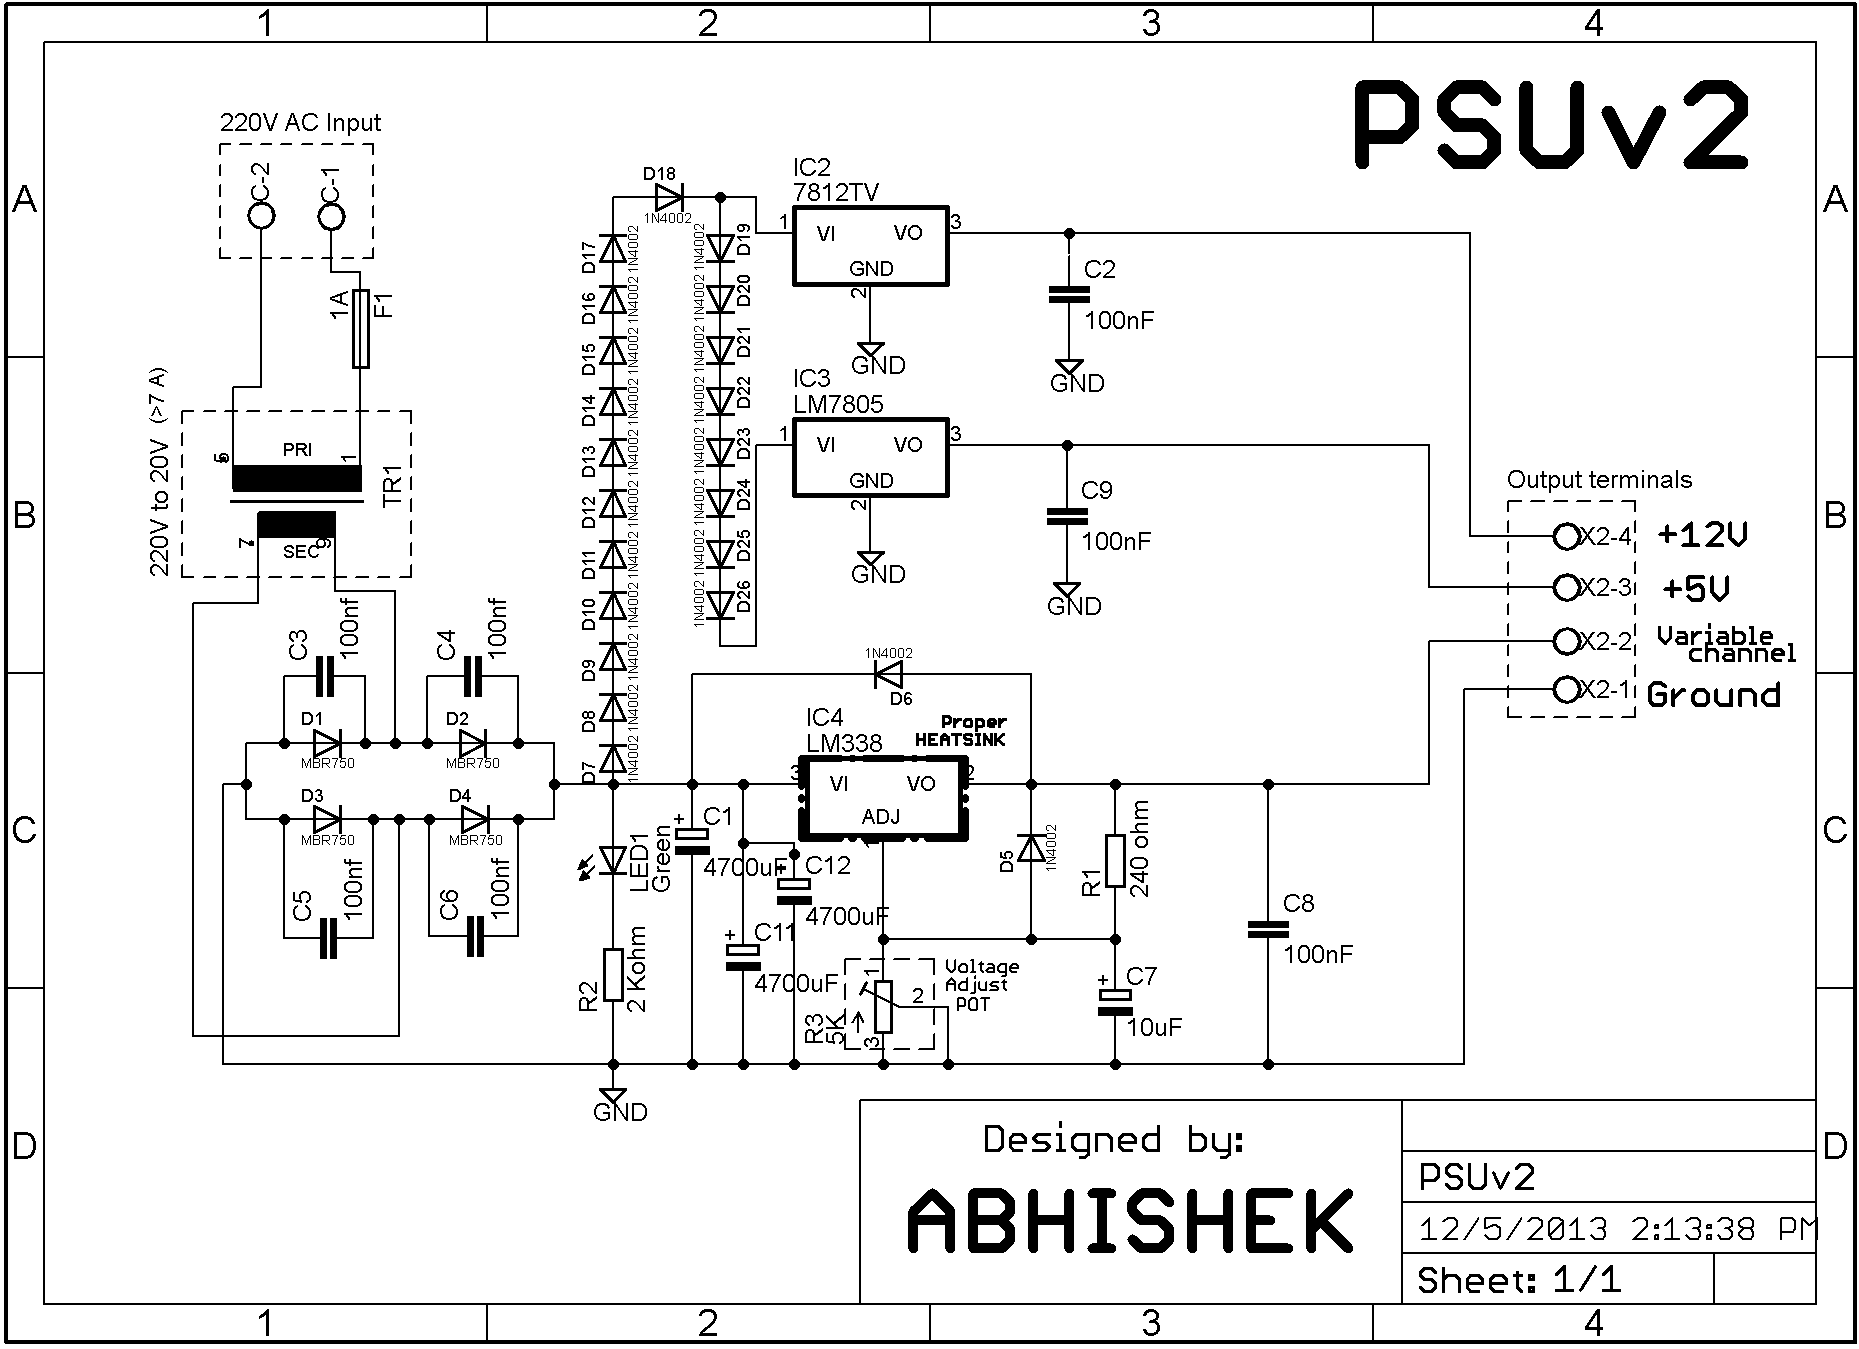 tattoo power supply wiring diagram of where to pet a cat bench quotissues that rouse during build